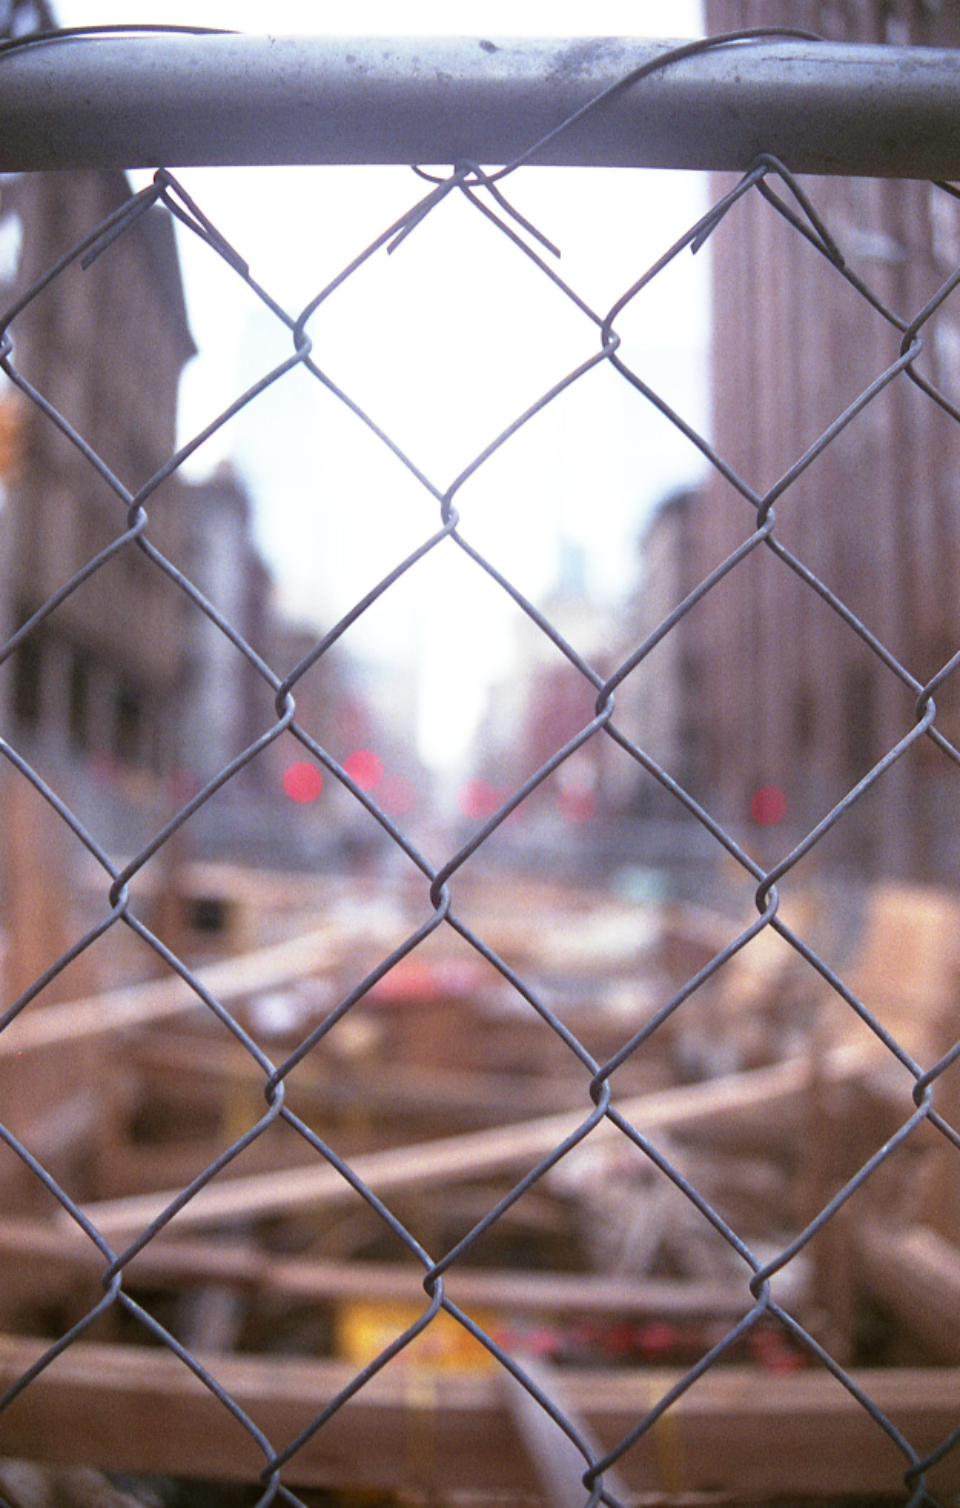 construction site safety area urban mesh chainlink barrier city buildings fence abstract